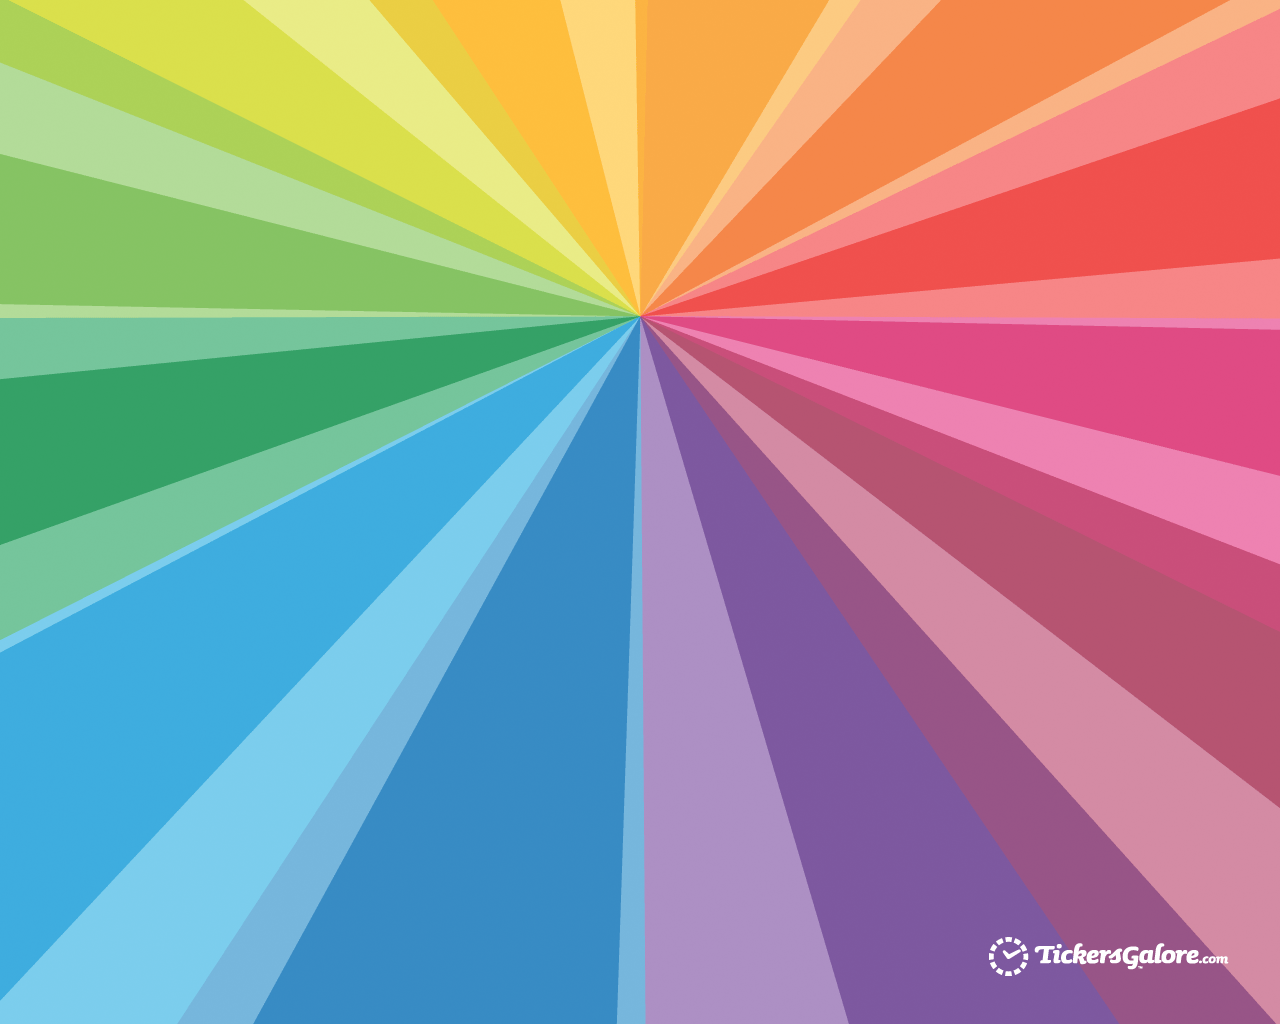 free desktop wallpaper - rainbow background graphic